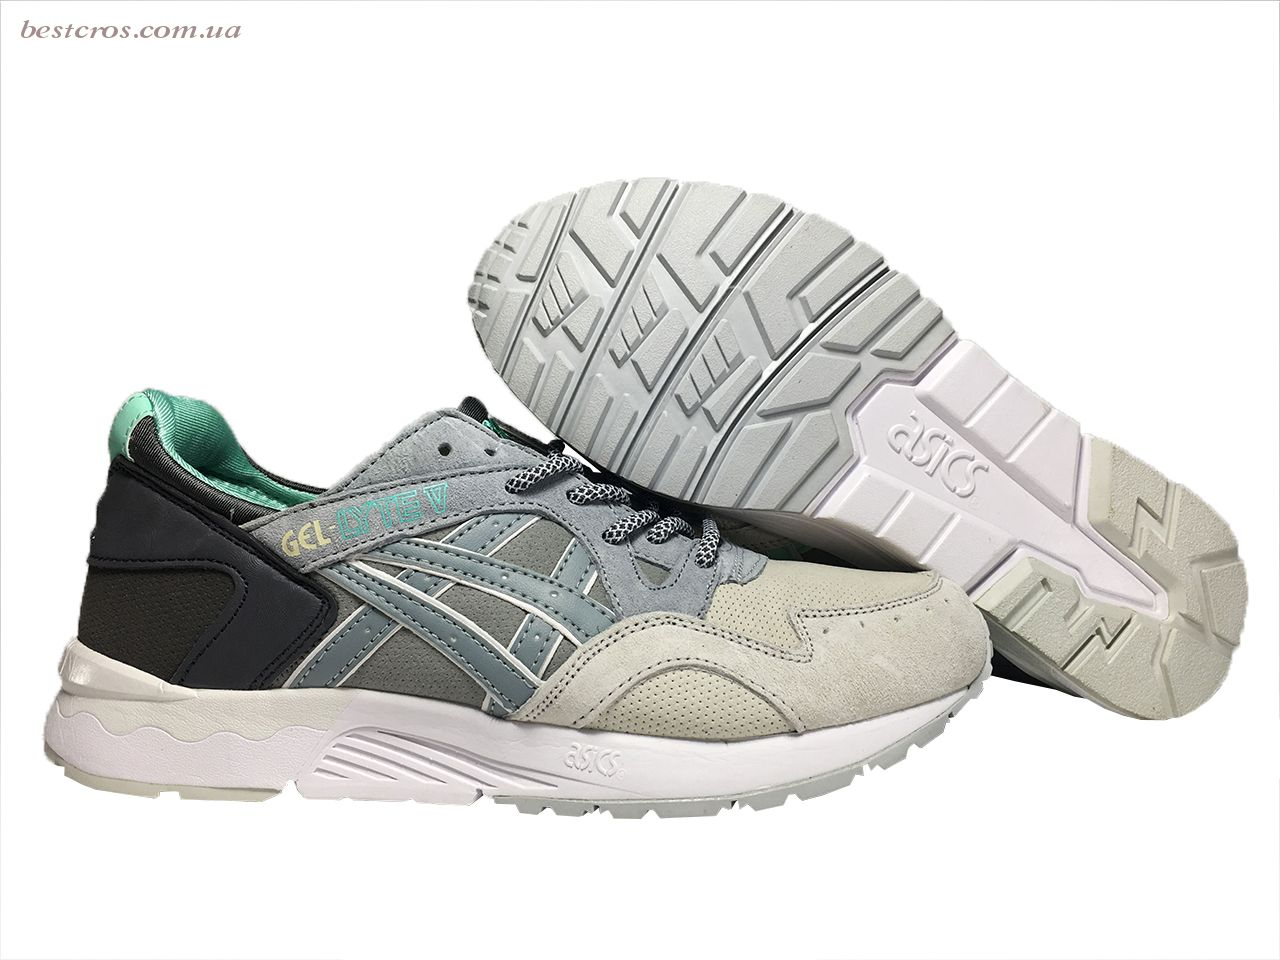 Мужские кроссовки Asics Gel Cream/Grey/Black/White/Light green - фото №3